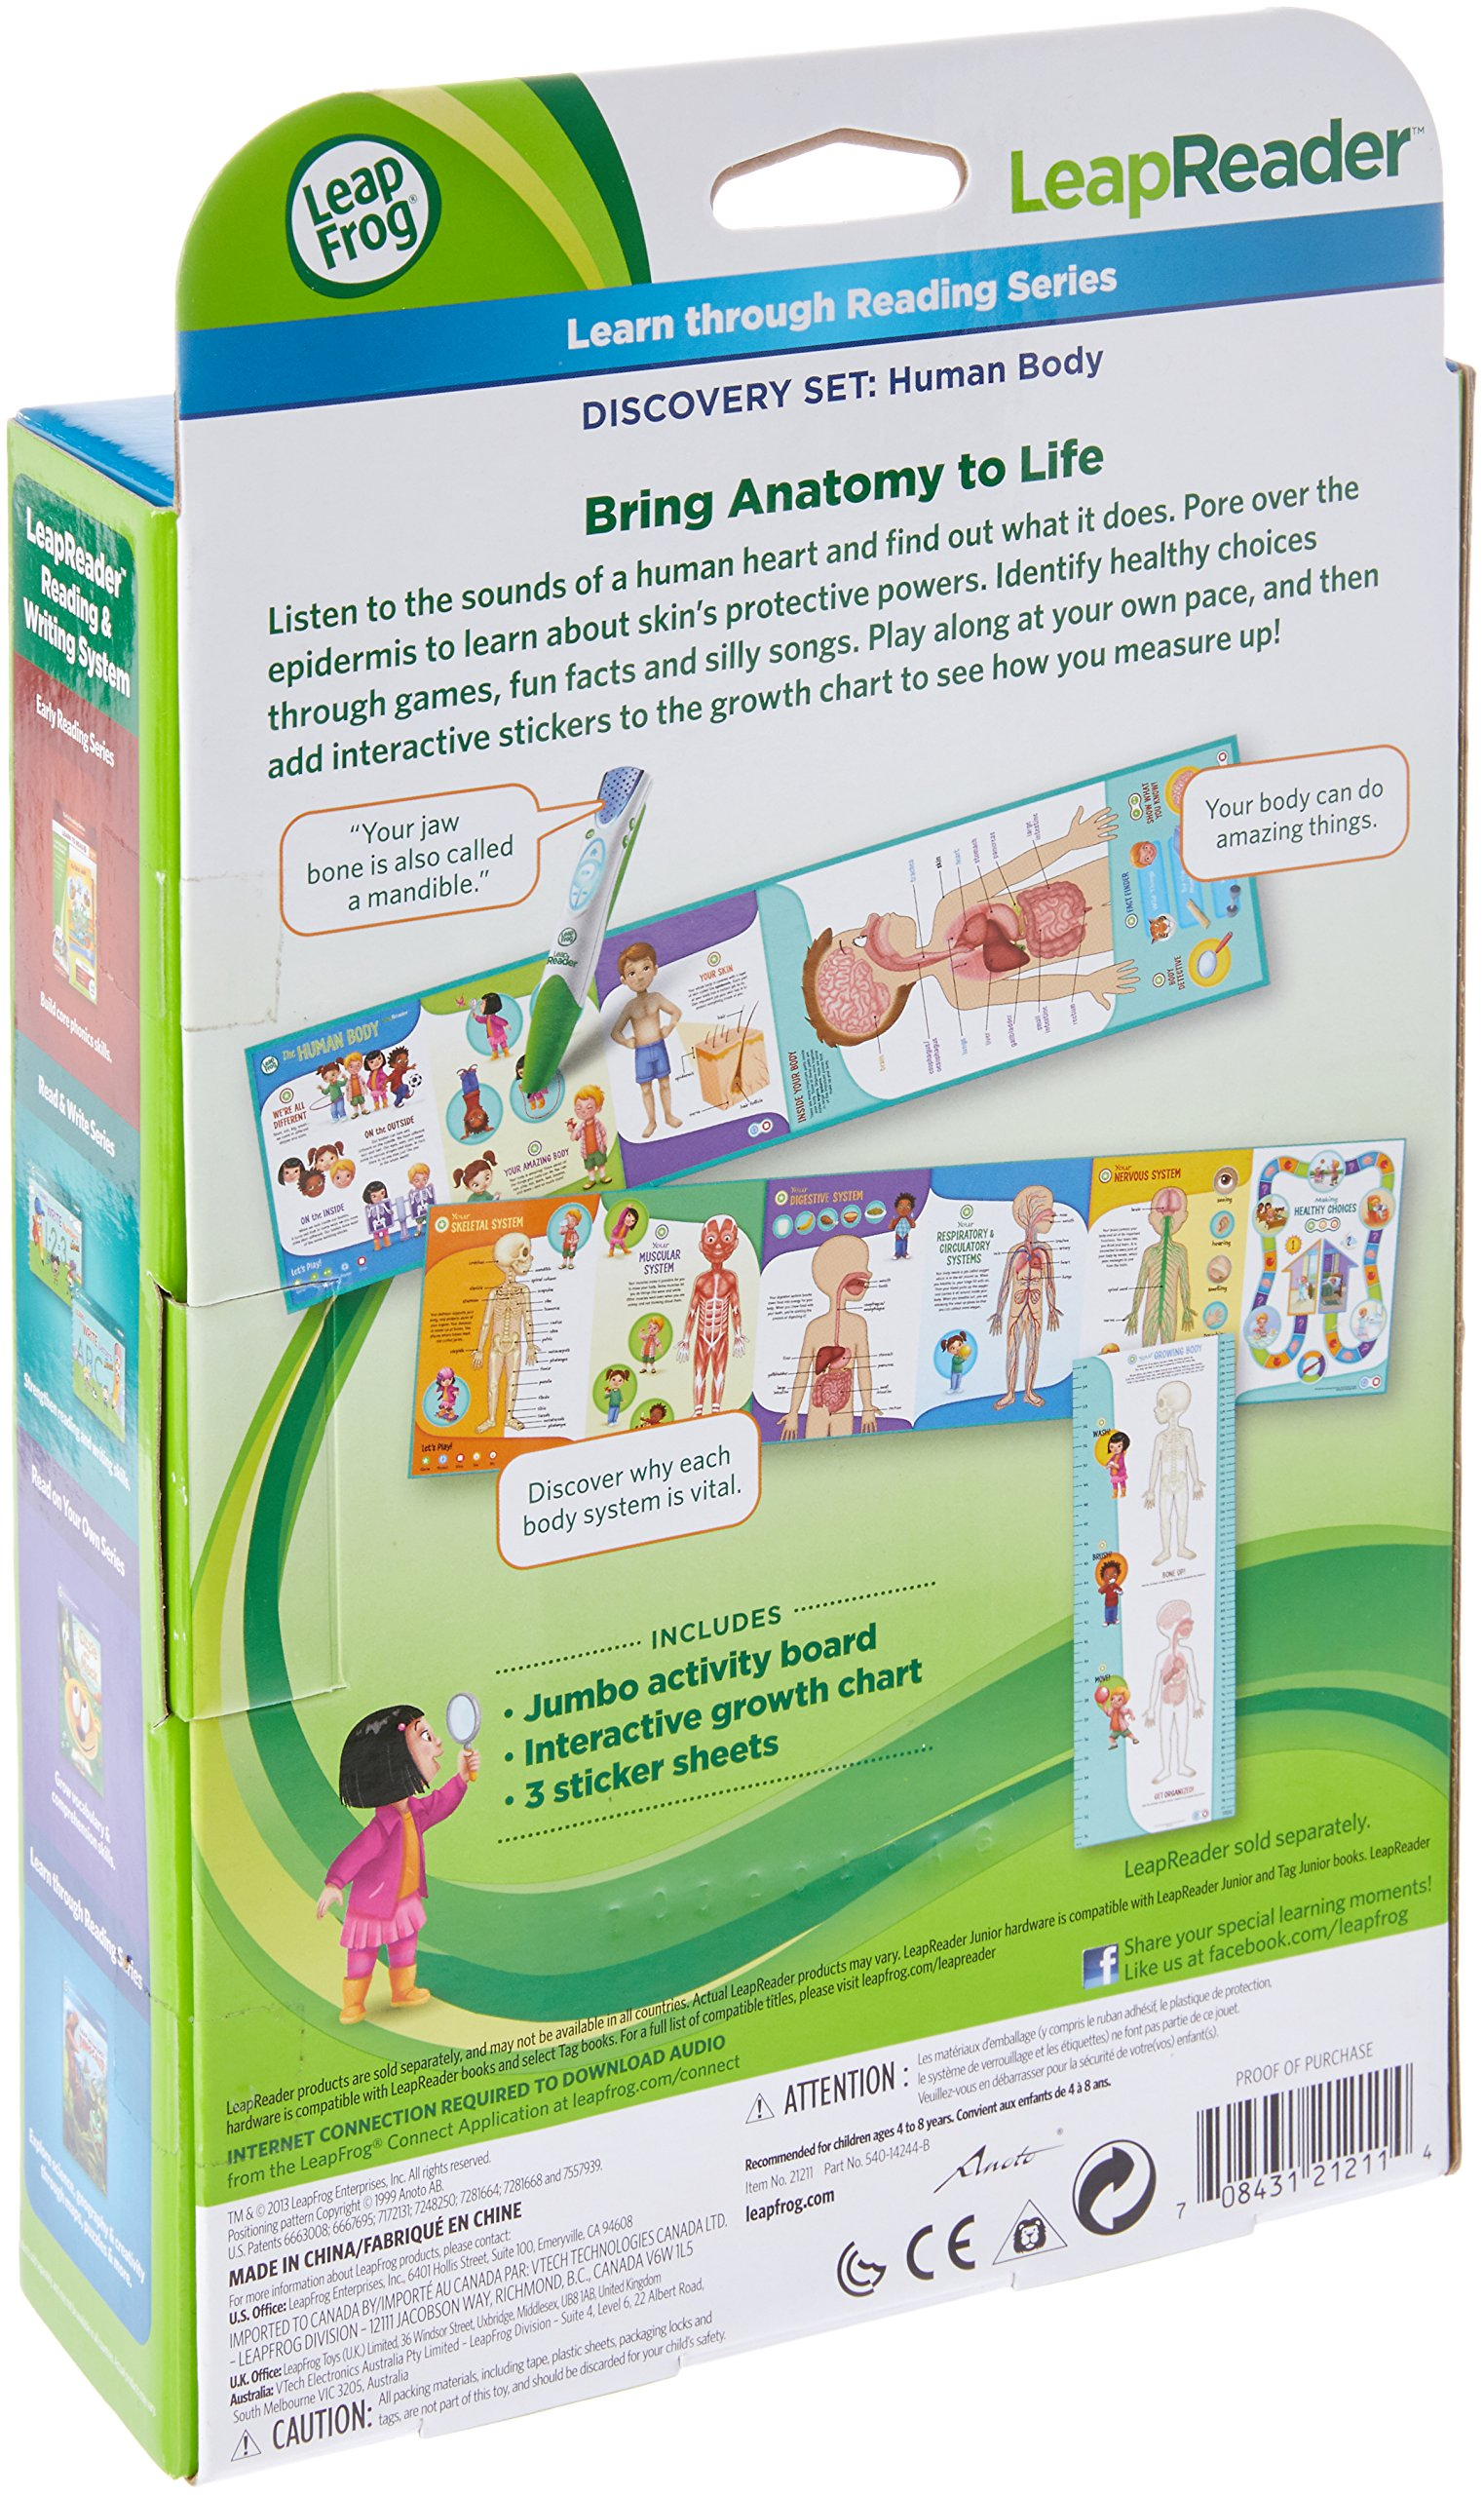 LeapFrog LeapReader Interactive Human Body Discovery Set (works with Tag) by LeapFrog (Image #2)